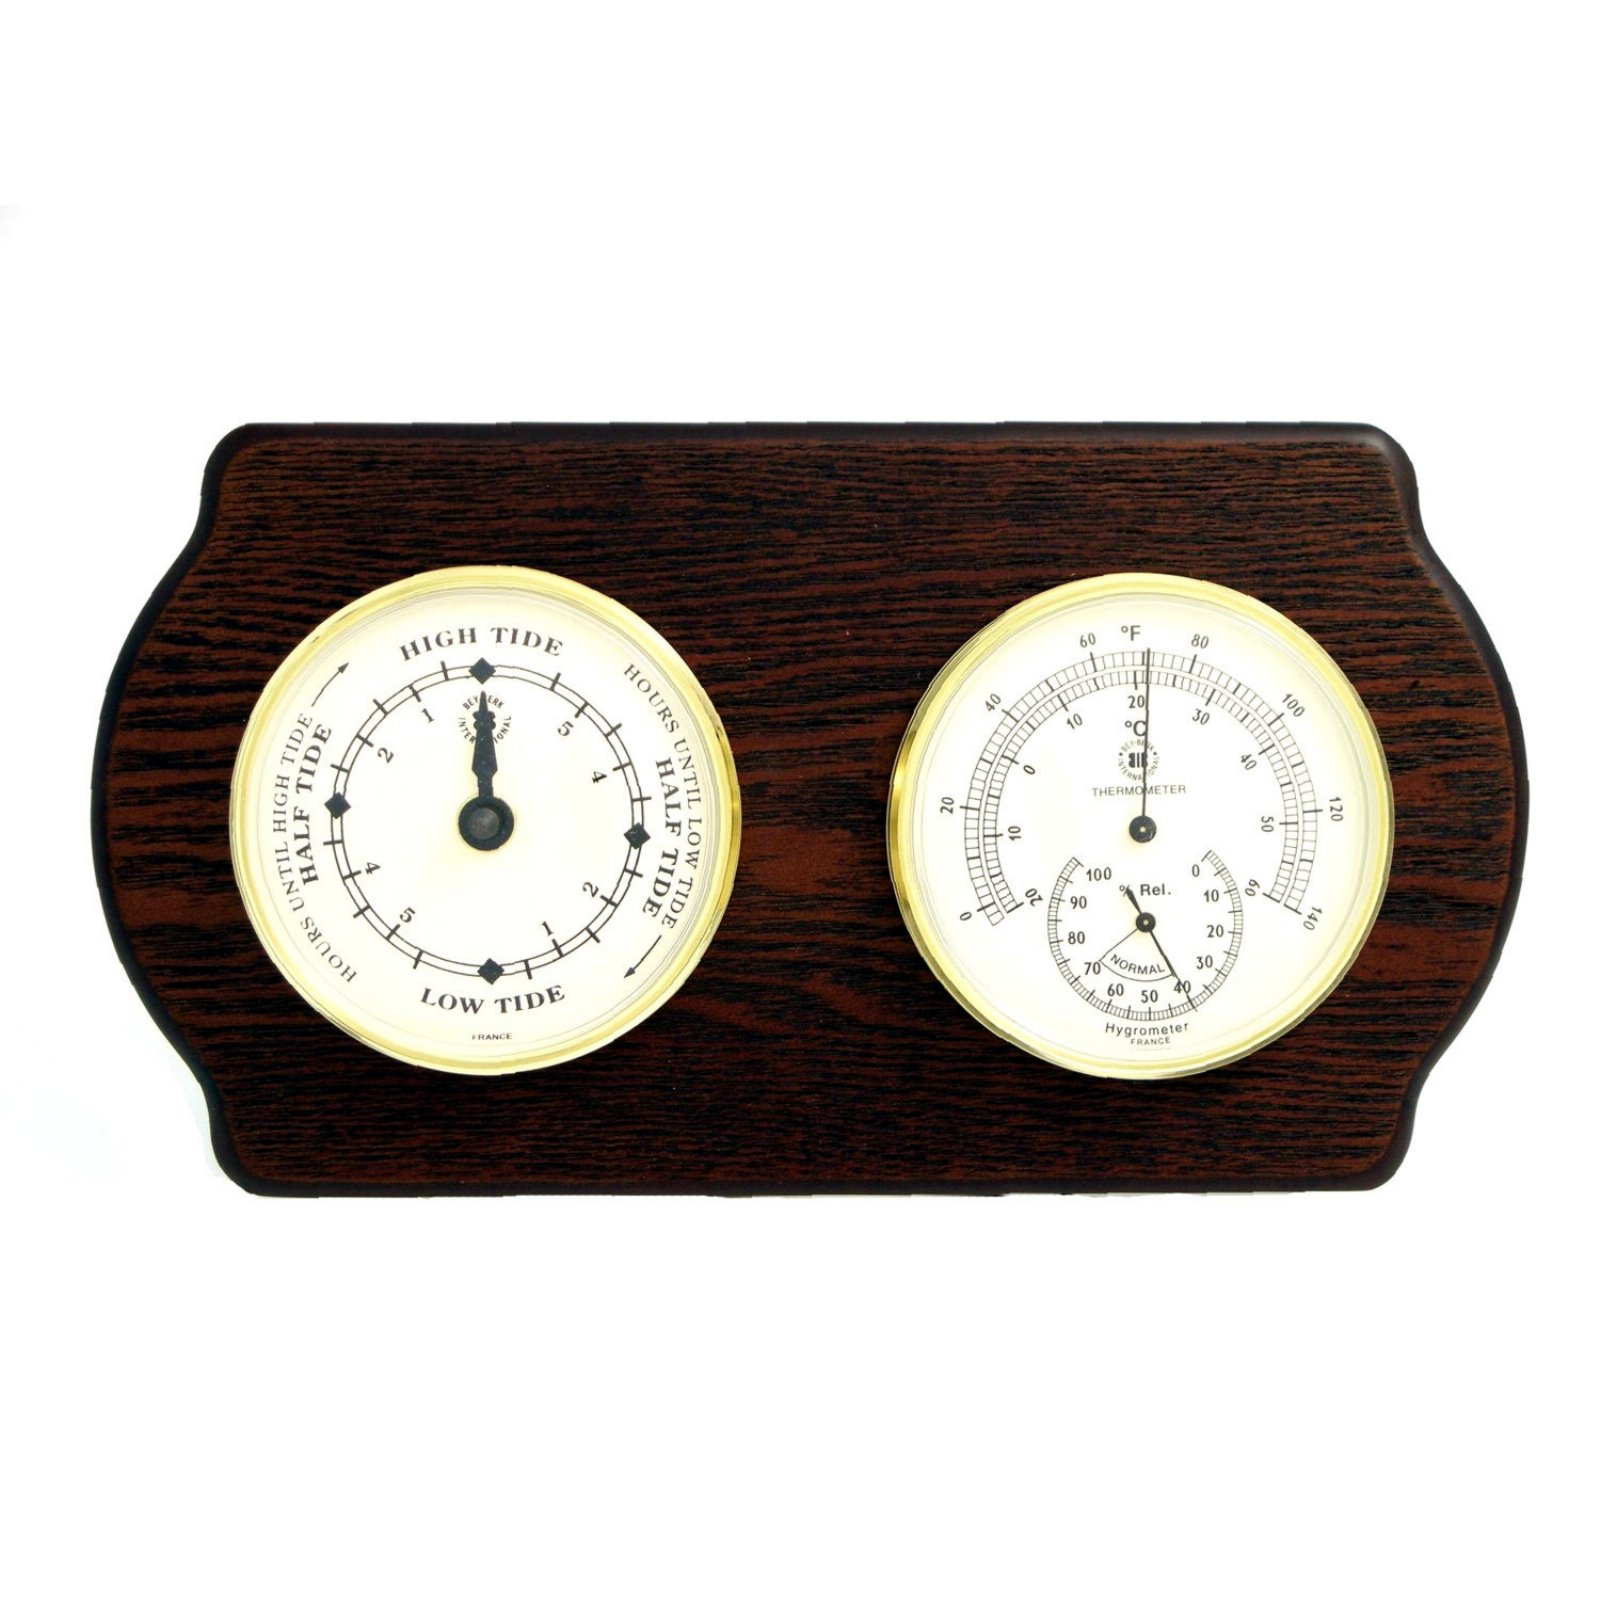 Bey-Berk International Brass Tide Clock, Thermo./Hygro. on Ash Wood T.P.